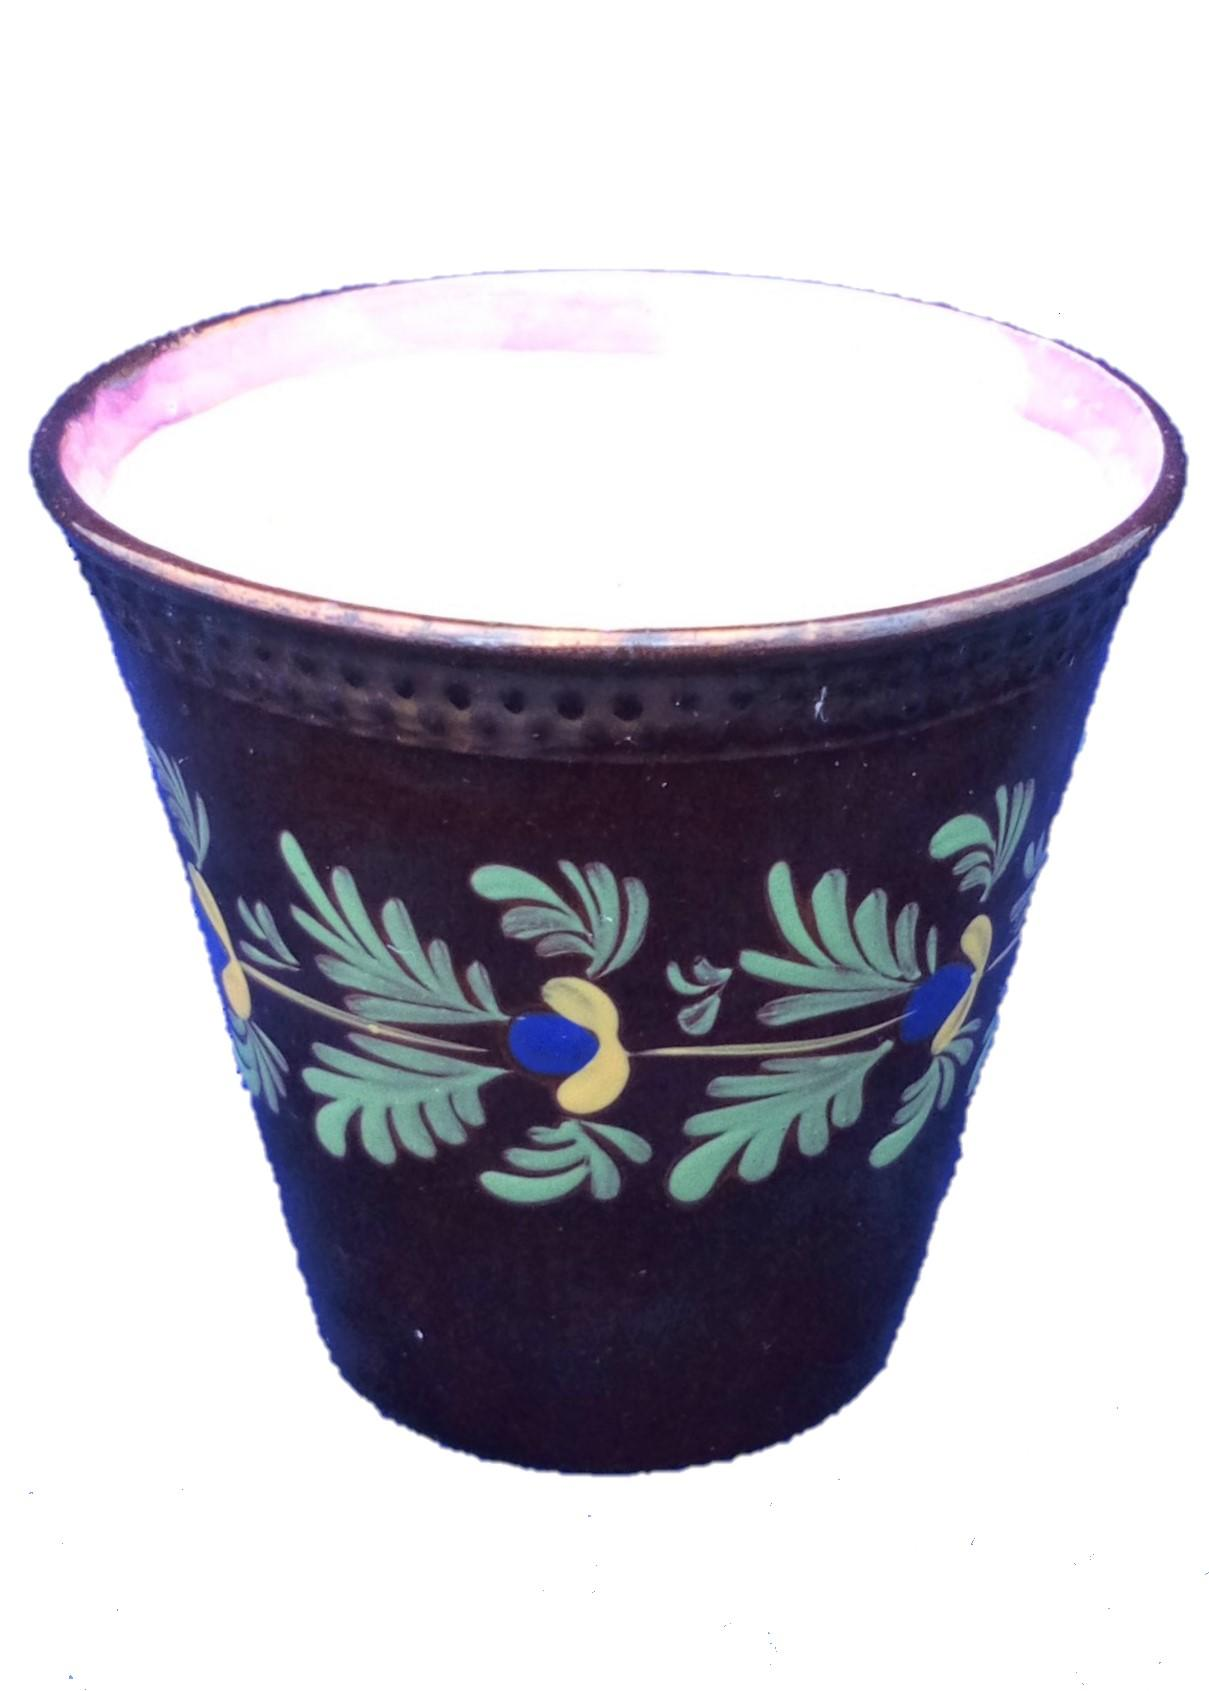 Antique Victorian Hand Painted Copper Lustre Ale Beaker Cup with Pink Lustre Rim circa 1840